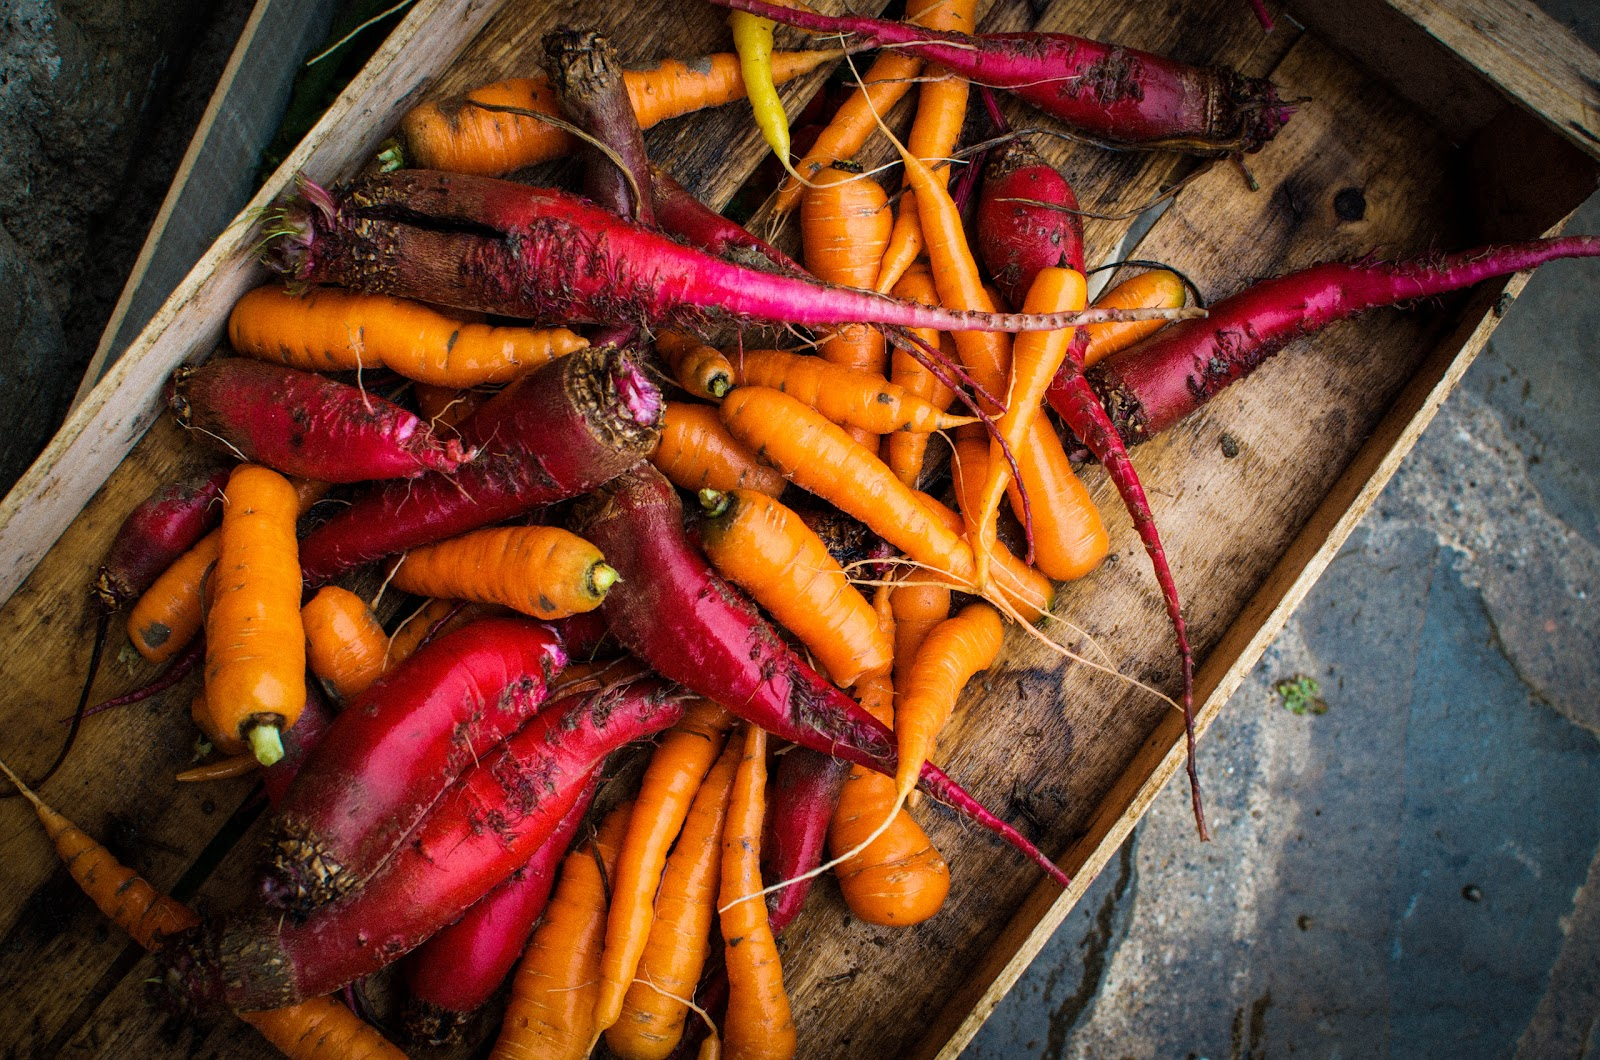 ... Marche Recipe Box: Roasted Root Vegetables {Heirloom Beets & Carrots